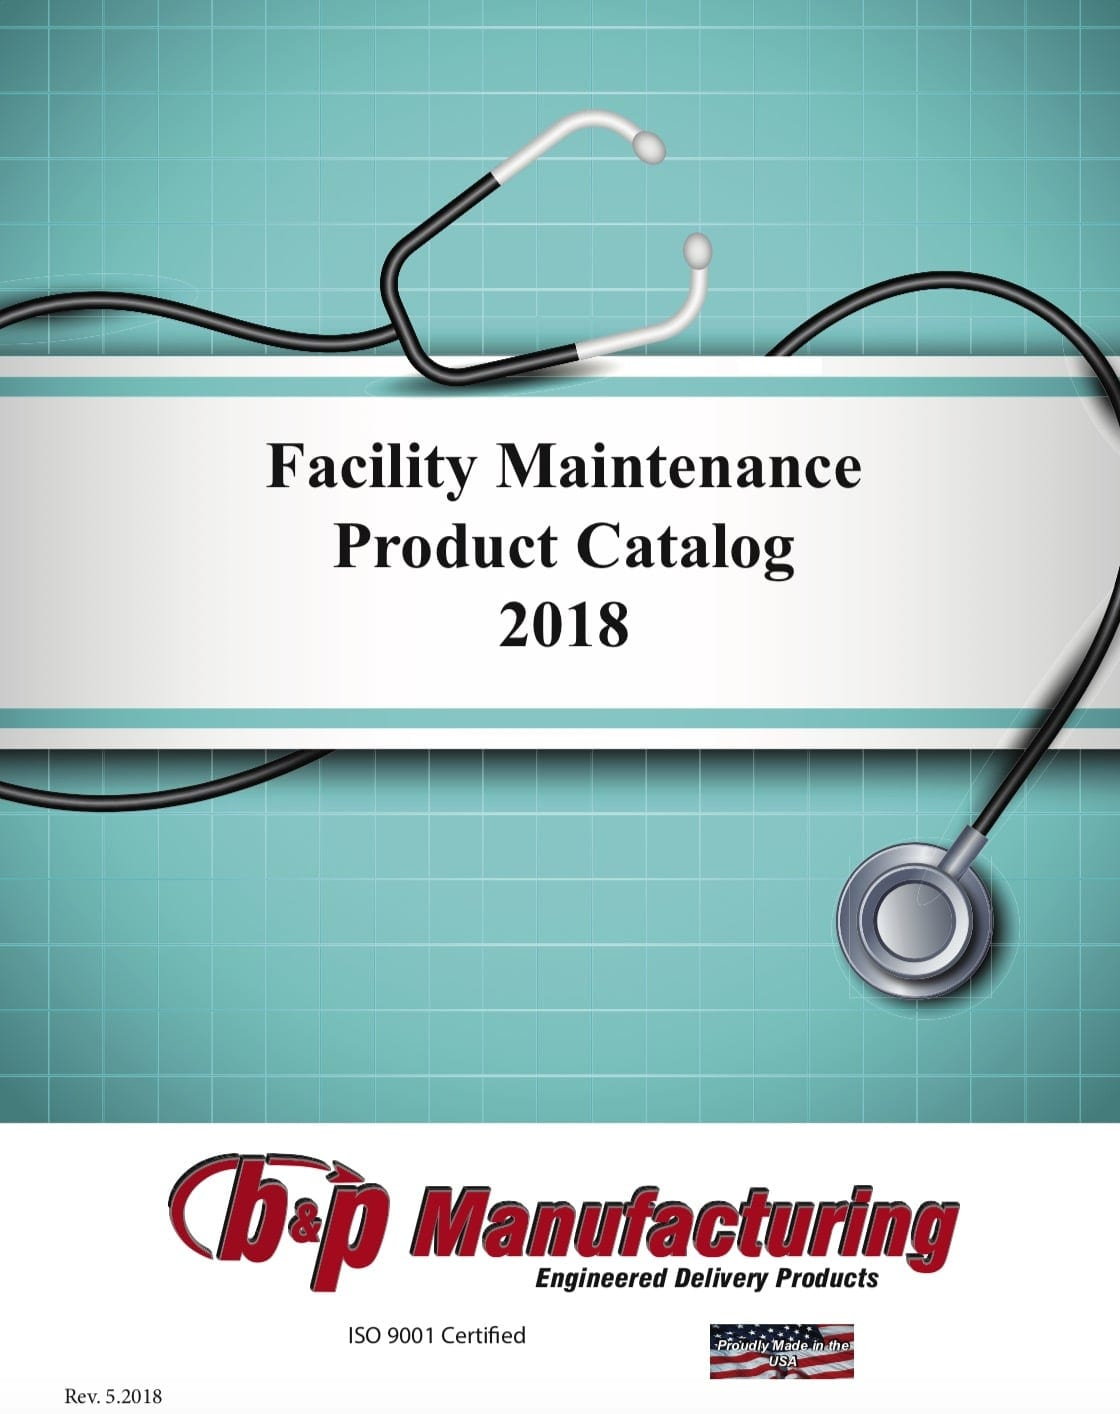 Health Care Facility Maintenance